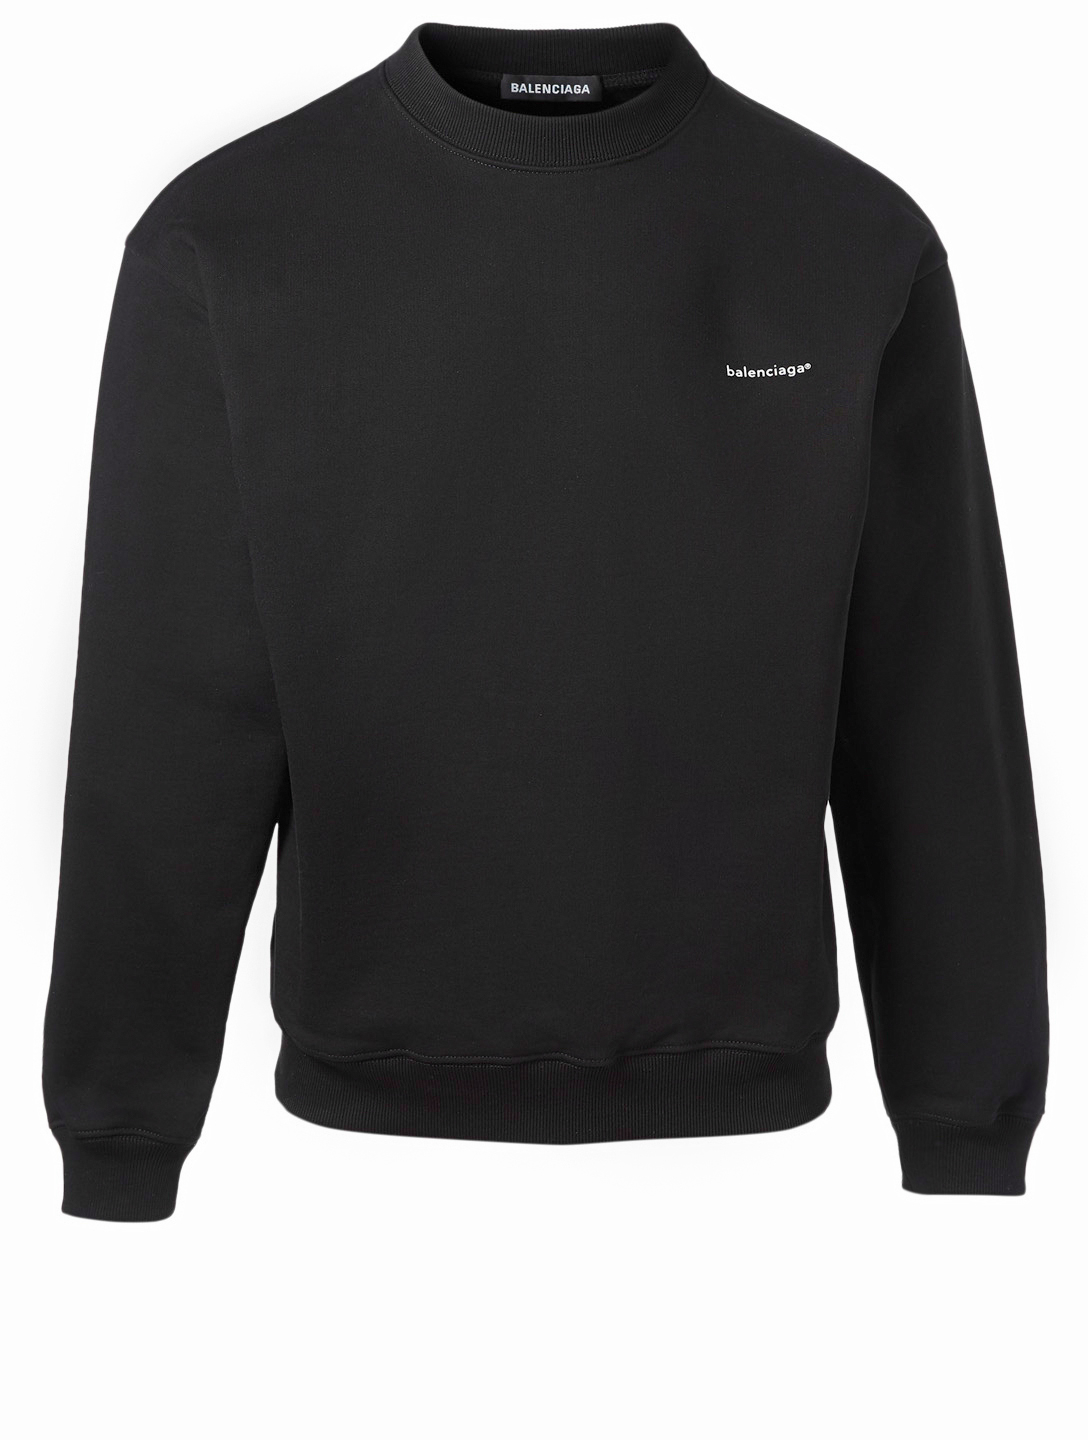 6649d540885c9f BALENCIAGA Copyright Logo Sweatshirt Men's Black ...